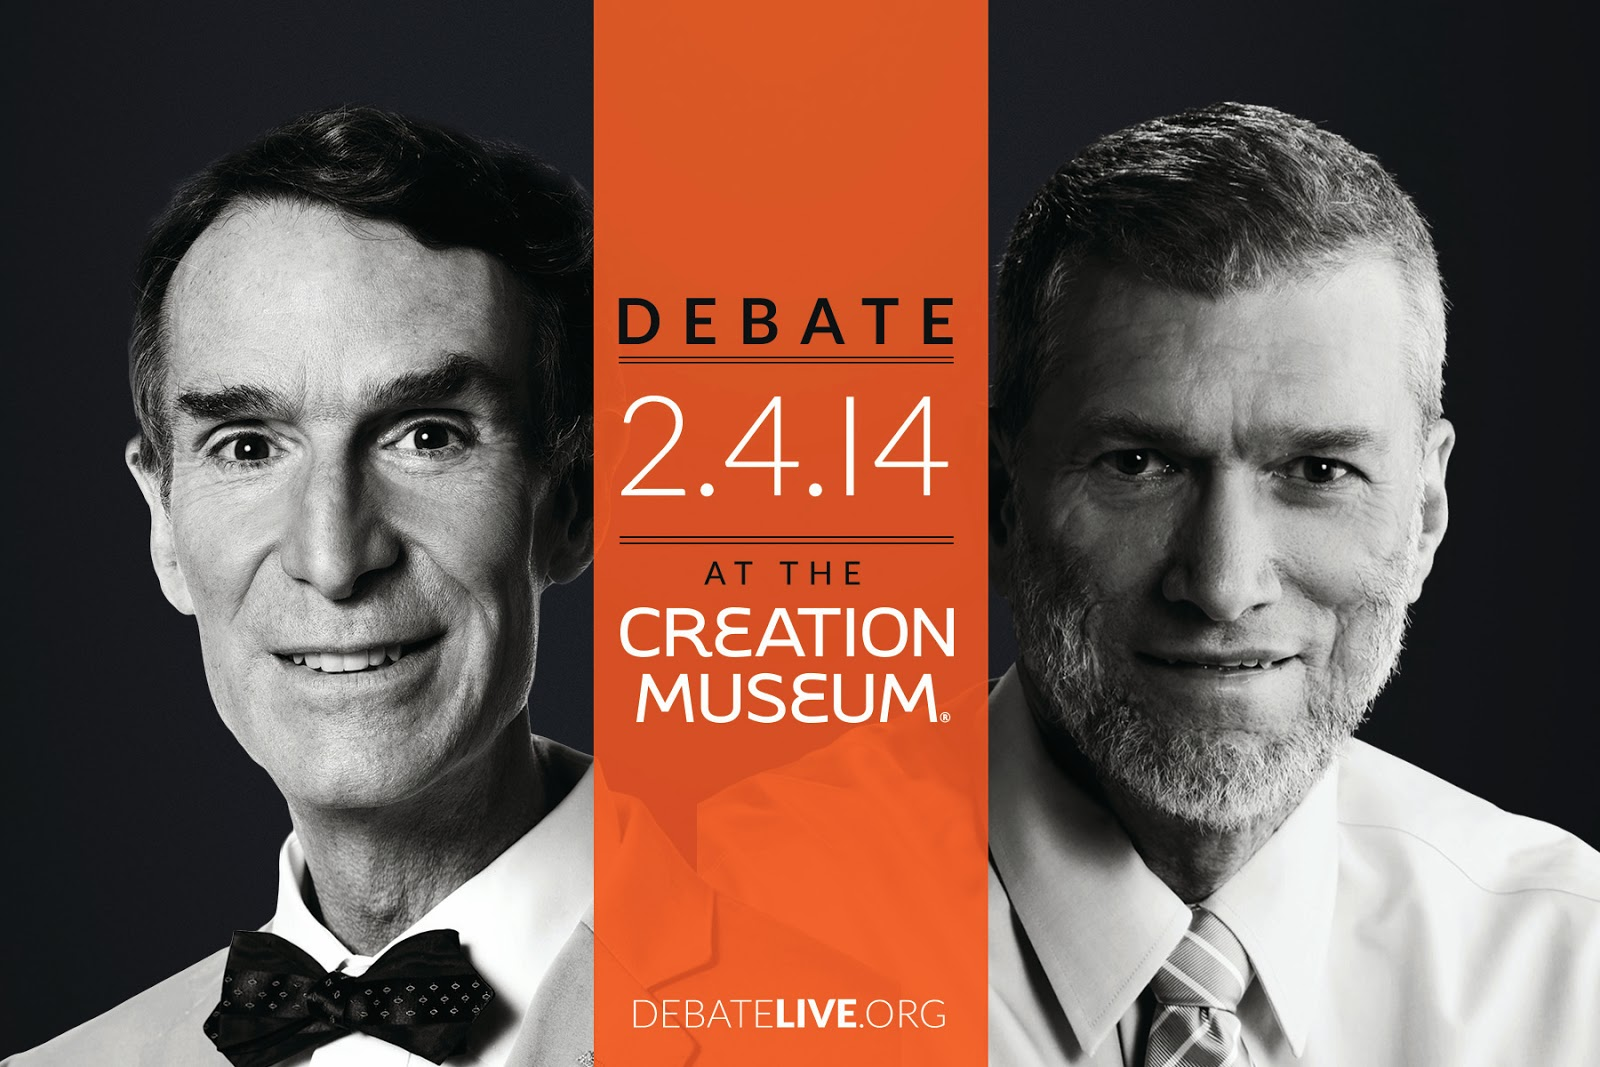 Bill Nye and Ken Ham on Creation Museum Debate postcard